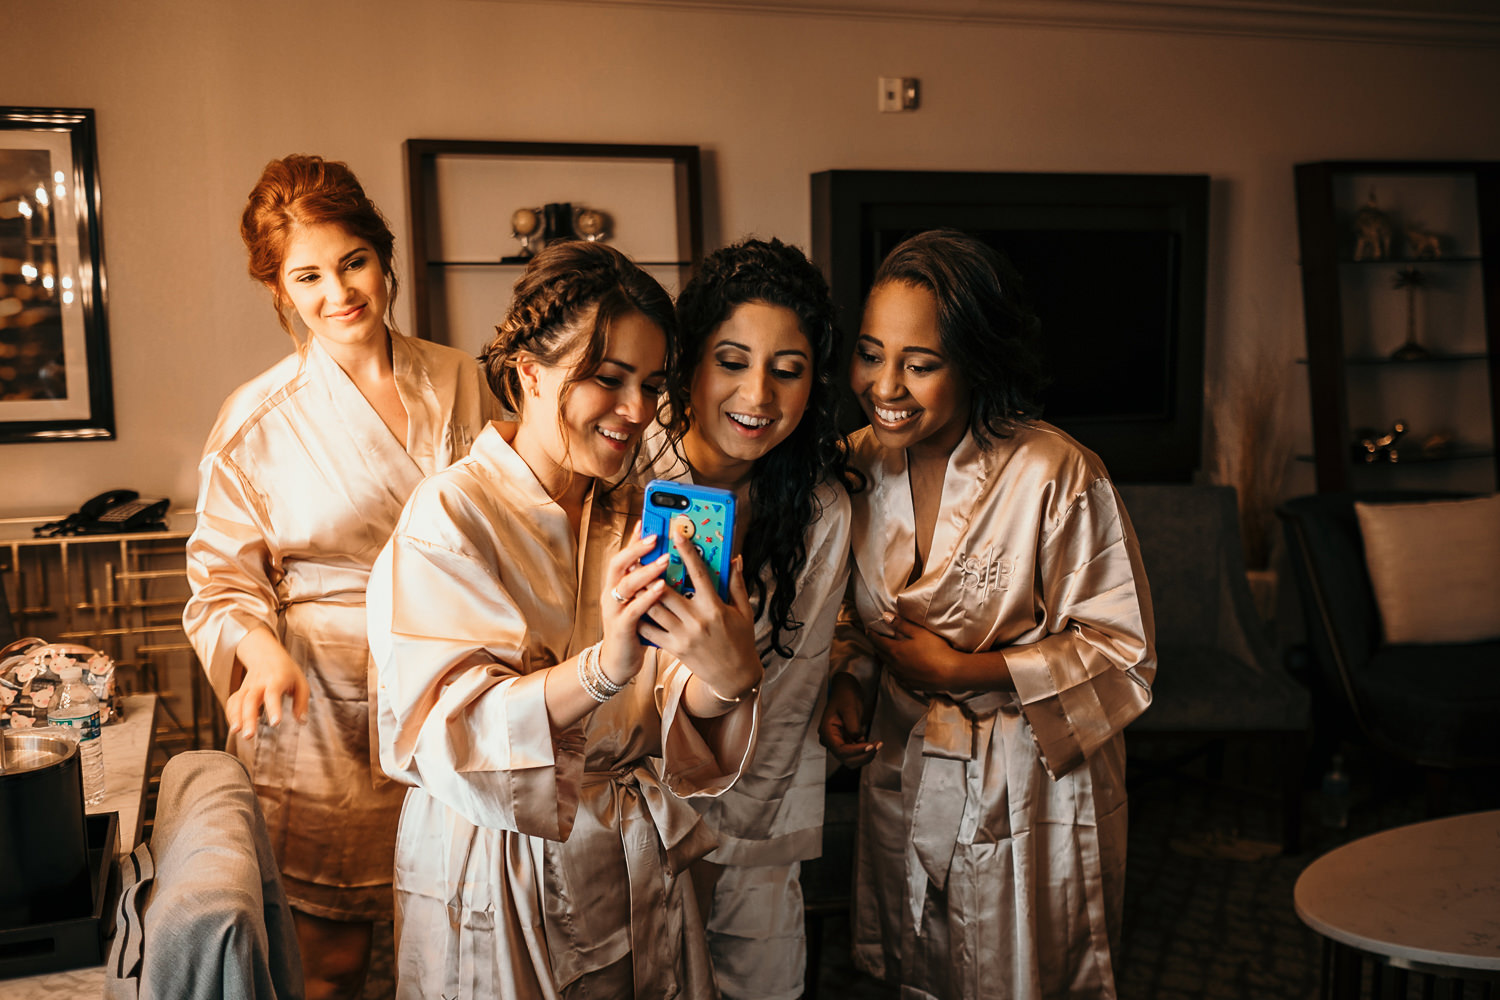 bridesmaids looking at selfies on phone